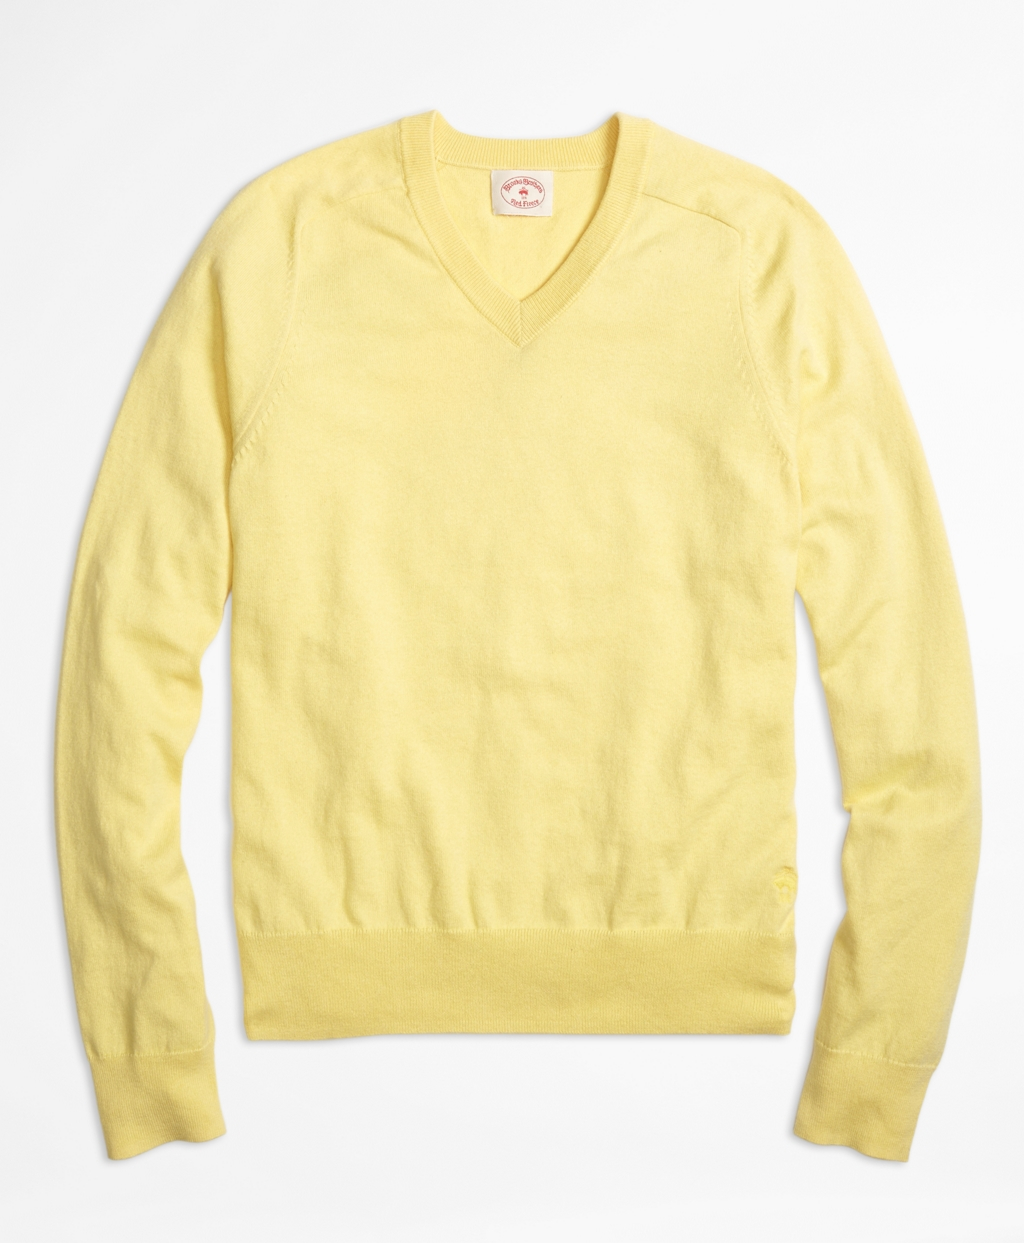 Brooks brothers Cotton Cashmere V-neck Sweater in Yellow for Men ...